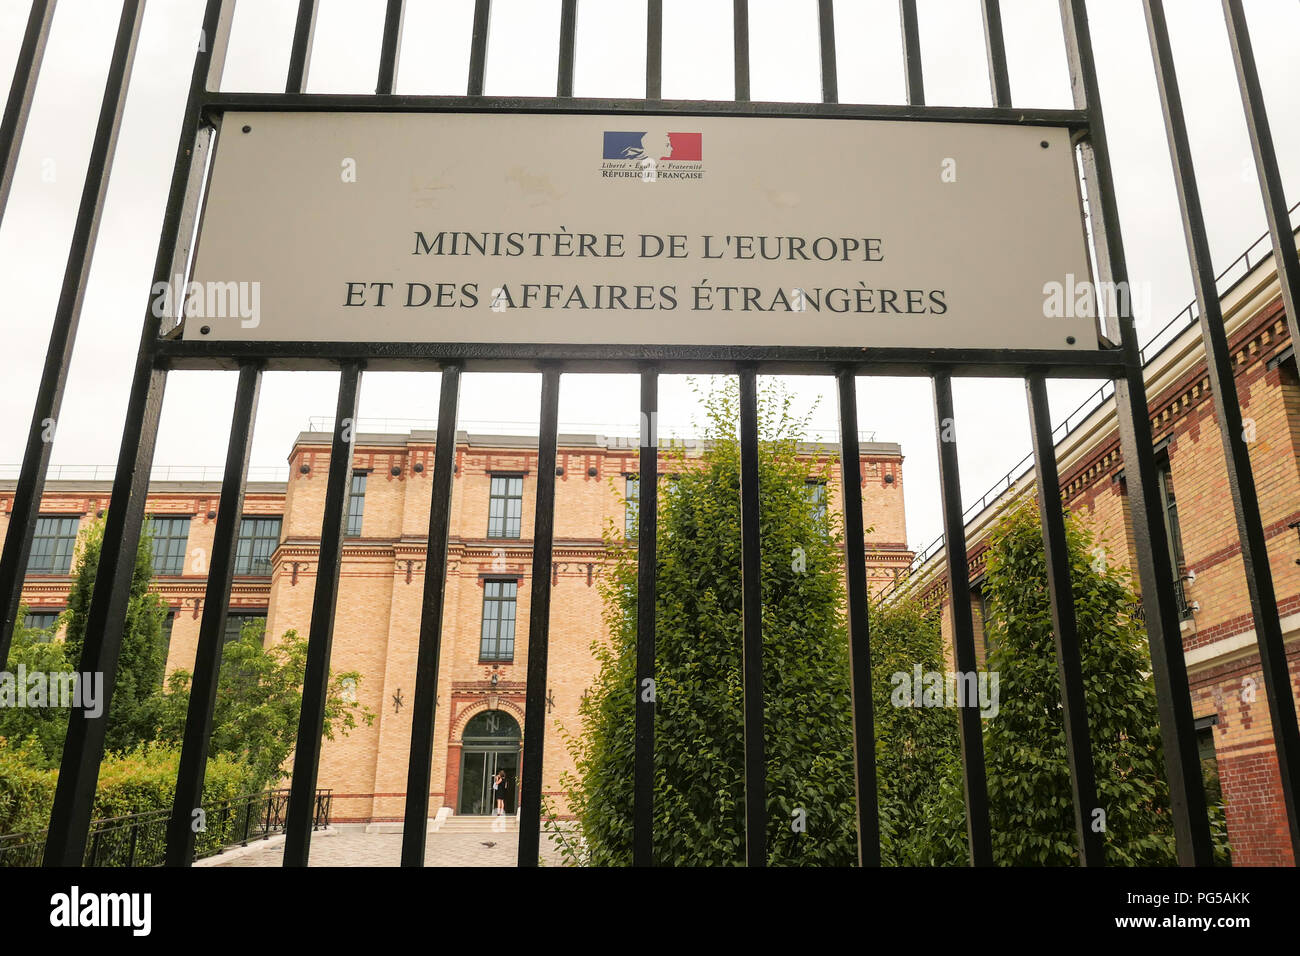 Ministry of Europe and Foreign Affairs, Quai d'Orsay, Paris, France - Stock Image